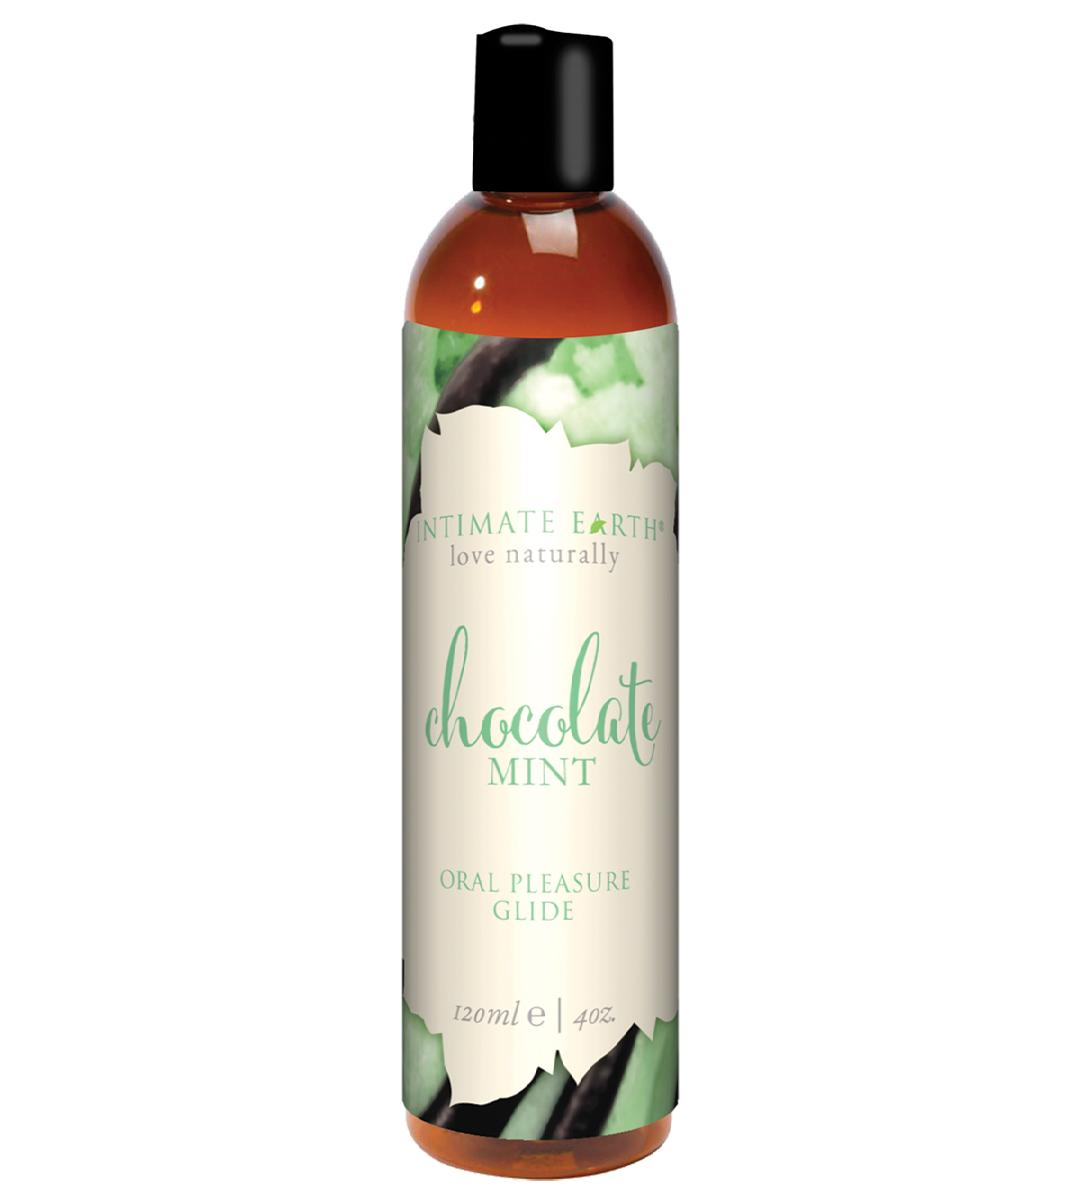 Intimate Earth Lube ChocoMint 2oz